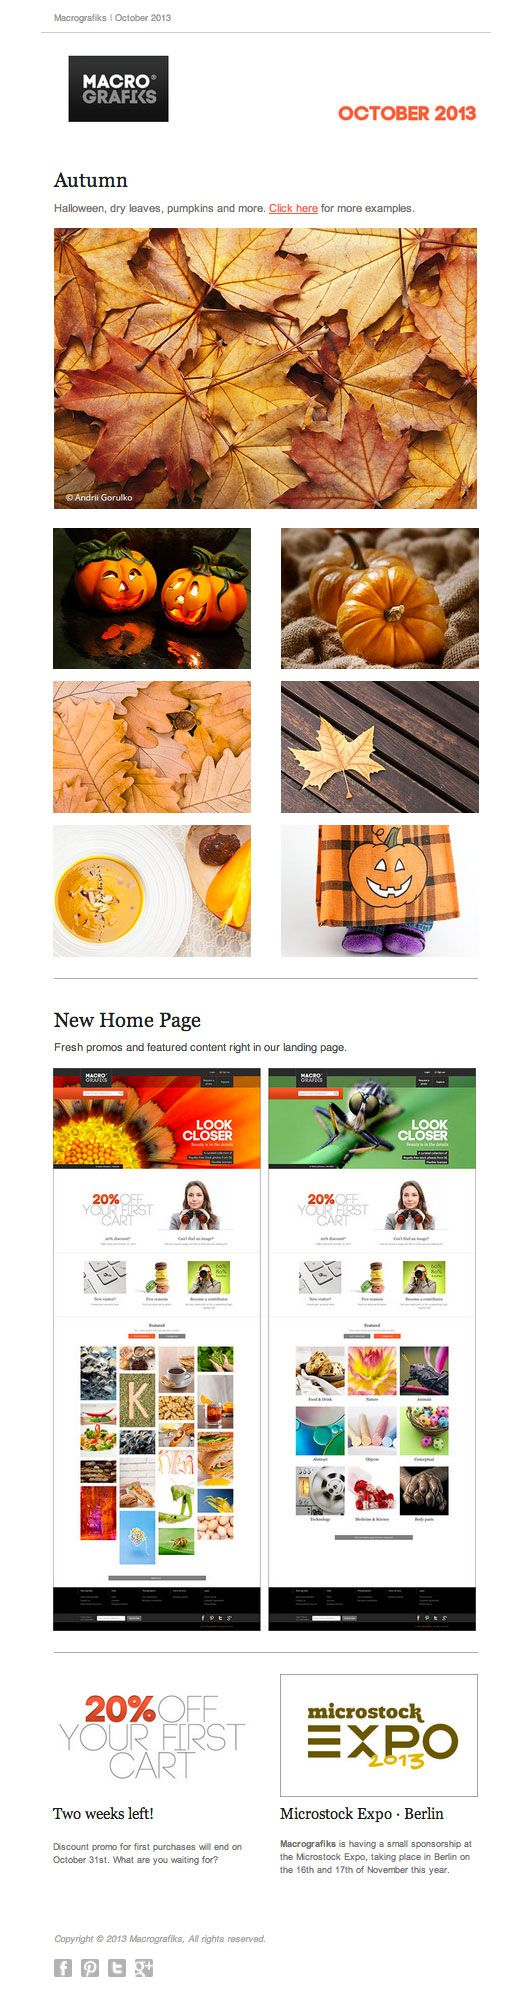 Newsletter | October 2013 Autumn-Halloween images; New Home page.